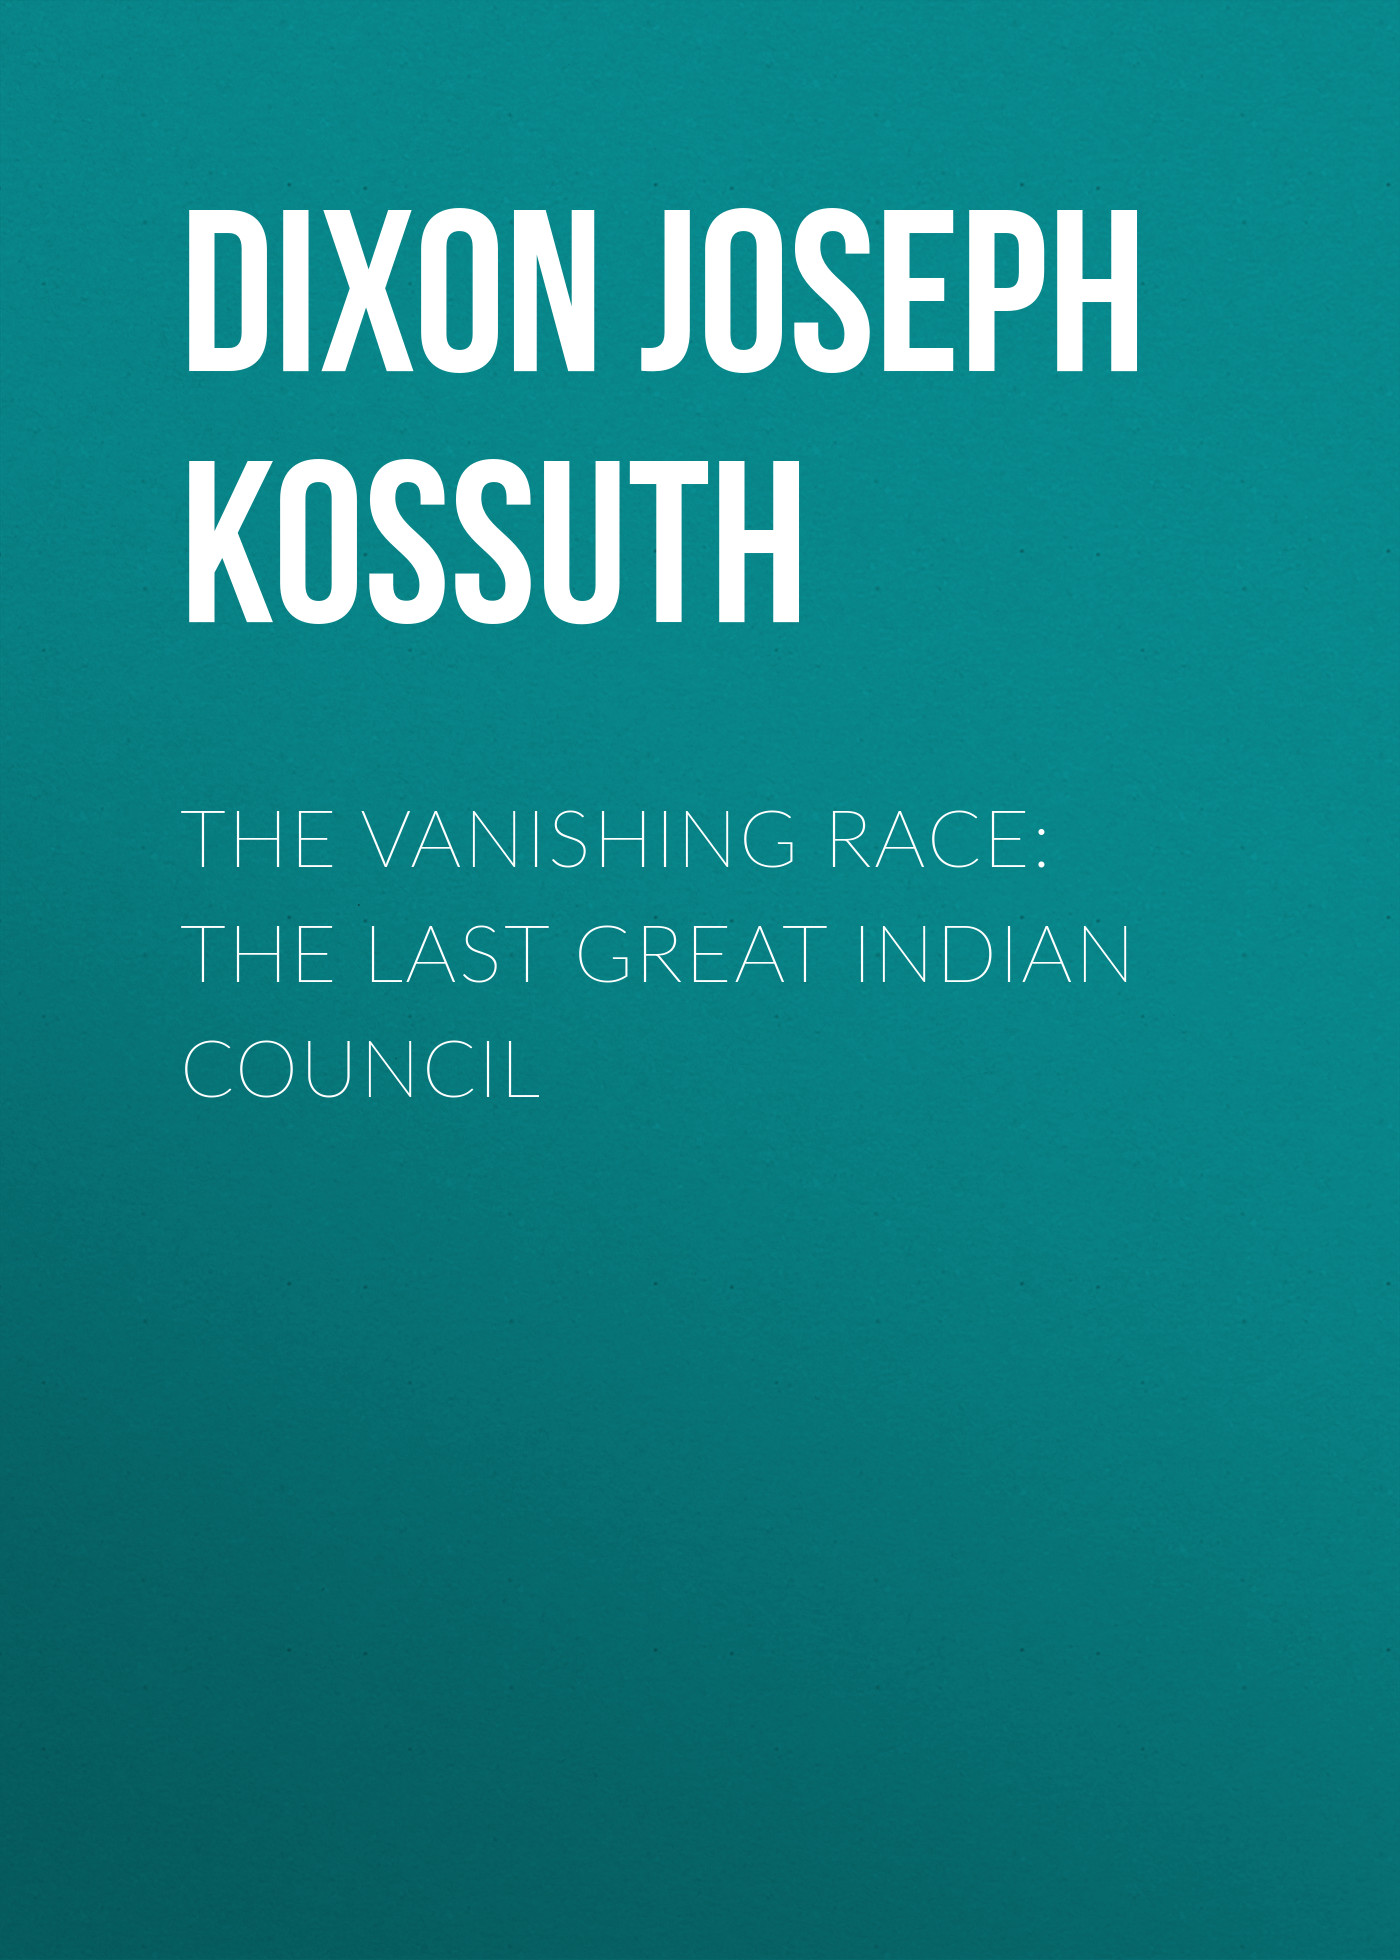 Dixon Joseph Kossuth The Vanishing Race: The Last Great Indian Council сергей горшков the vanishing world kamchatka